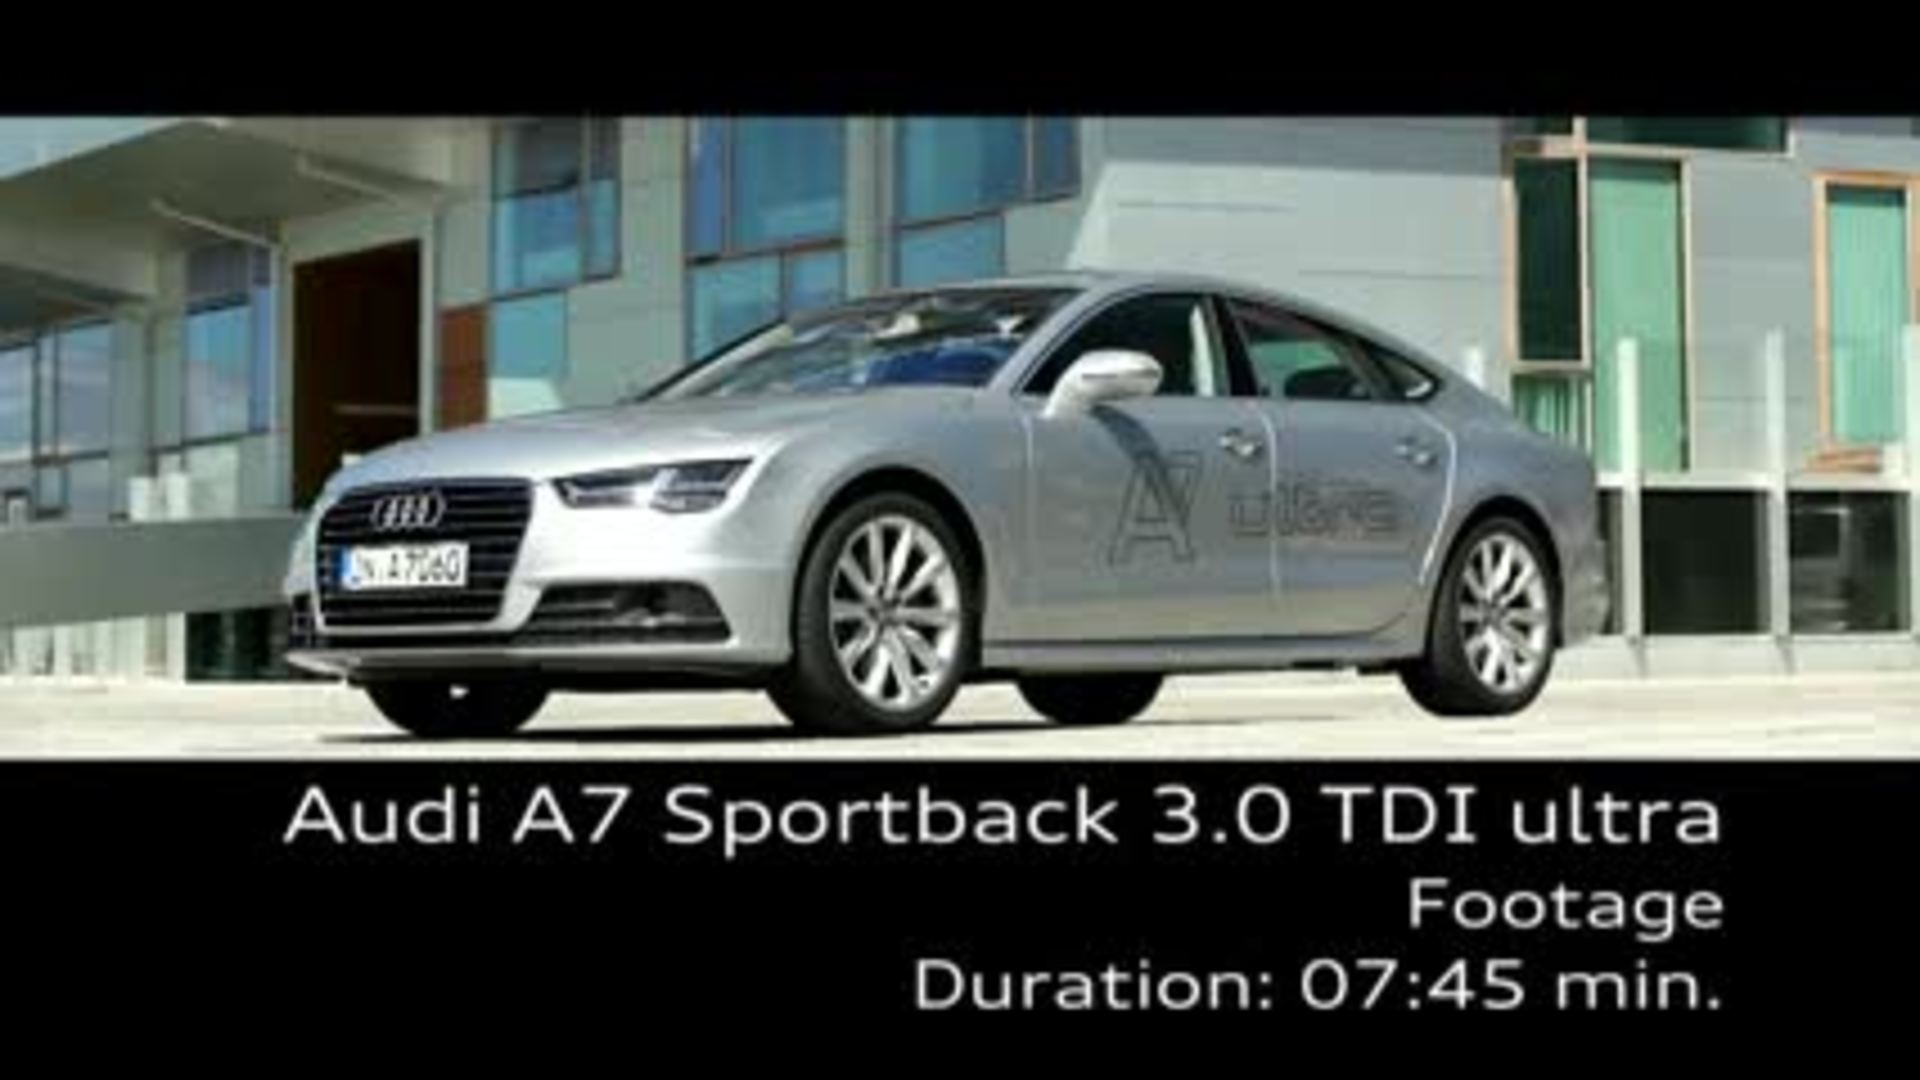 The Audi A7 Sportback TDI ultra - Footage